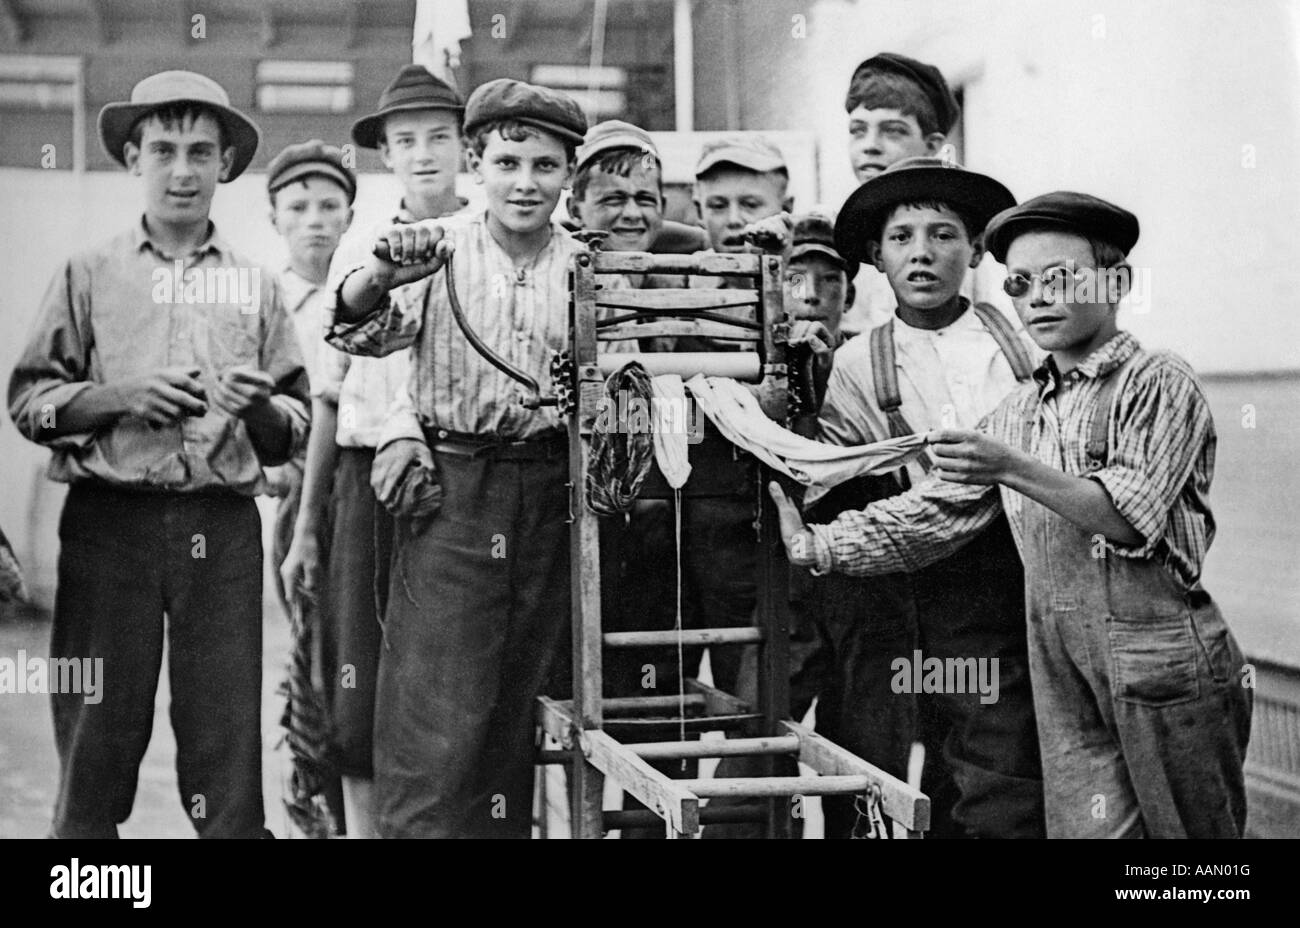 1930s GROUP OF CITY BOYS CRANKING WET LAUNDRY THROUGH MECHANICAL CLOTHES WRINGER LOOKING AT CAMERA - Stock Image